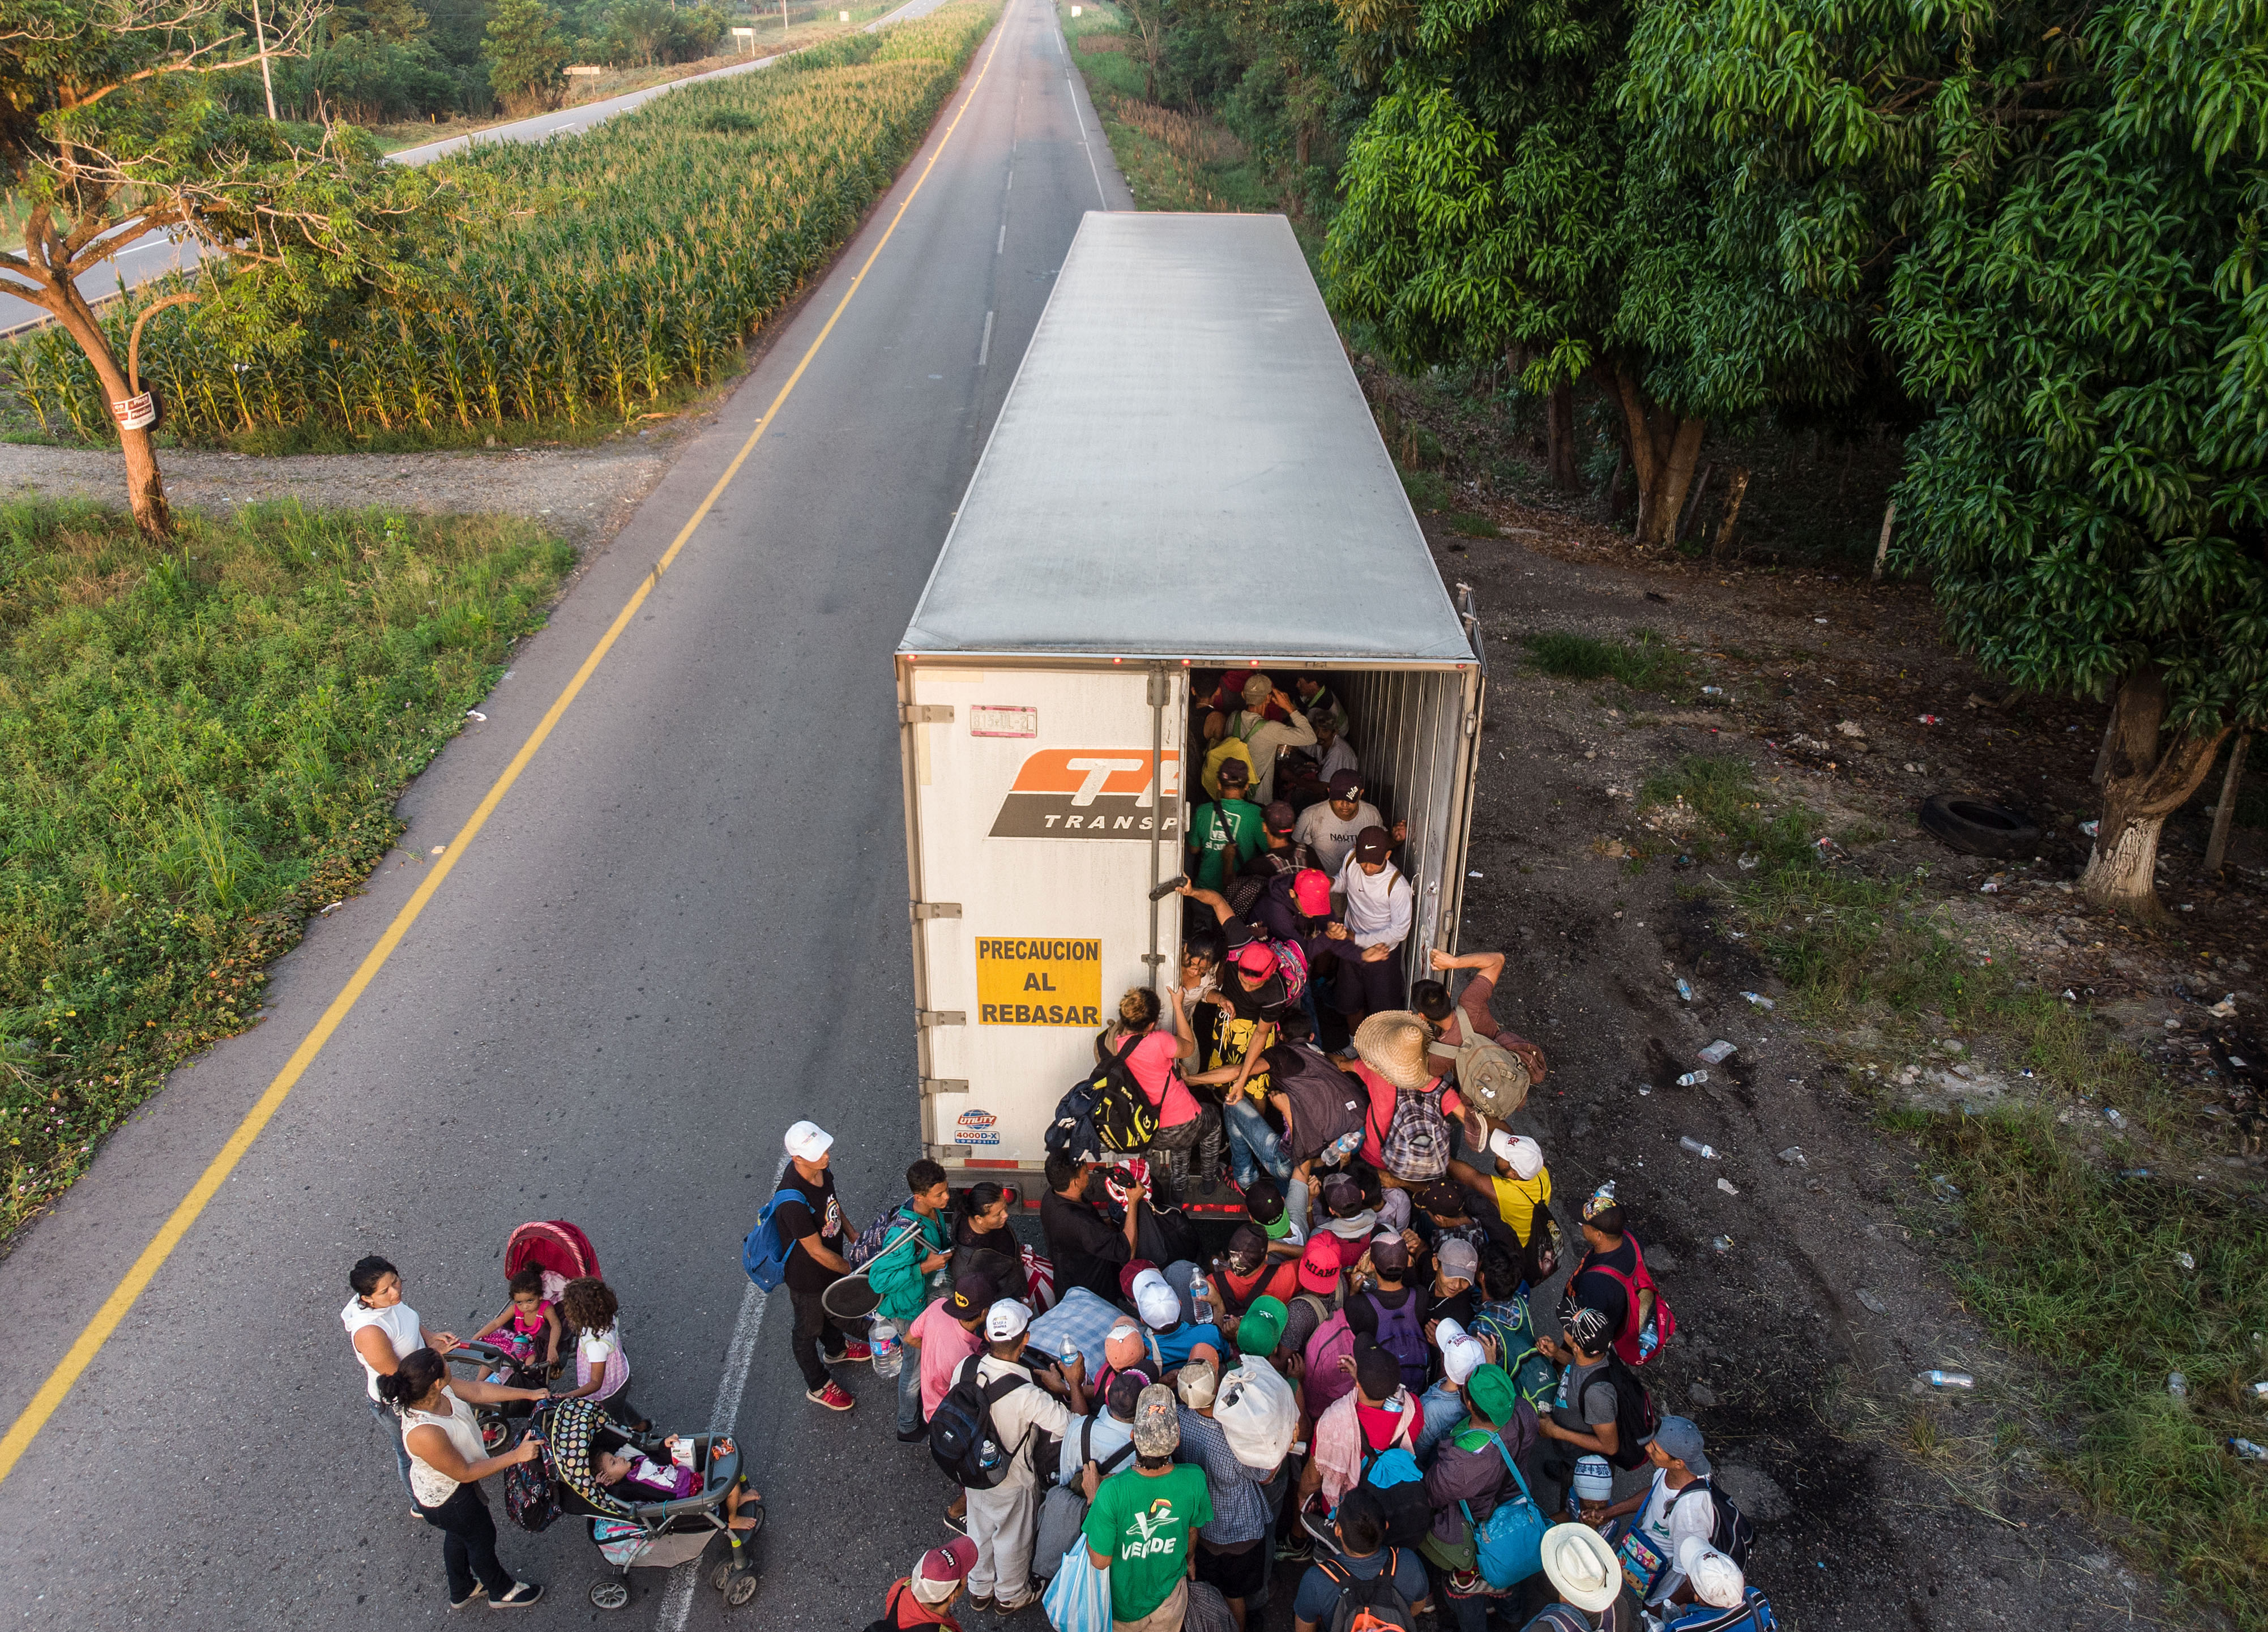 """Honduran migrants taking part in a caravan heading to the US, get on a truck, near Pijijiapan, southern Mexico on October 26, 2018. - The Pentagon is expected to deploy about 800 troops to the US-Mexico border, two US officials told AFP on Thursday, after President Donald Trump said the military would help tackle a """"national emergency"""" and called on a caravan of US-bound migrants to turn around. (Photo by Guillermo Arias / AFP) (Photo credit should read GUILLERMO ARIAS/AFP/Getty Images)"""